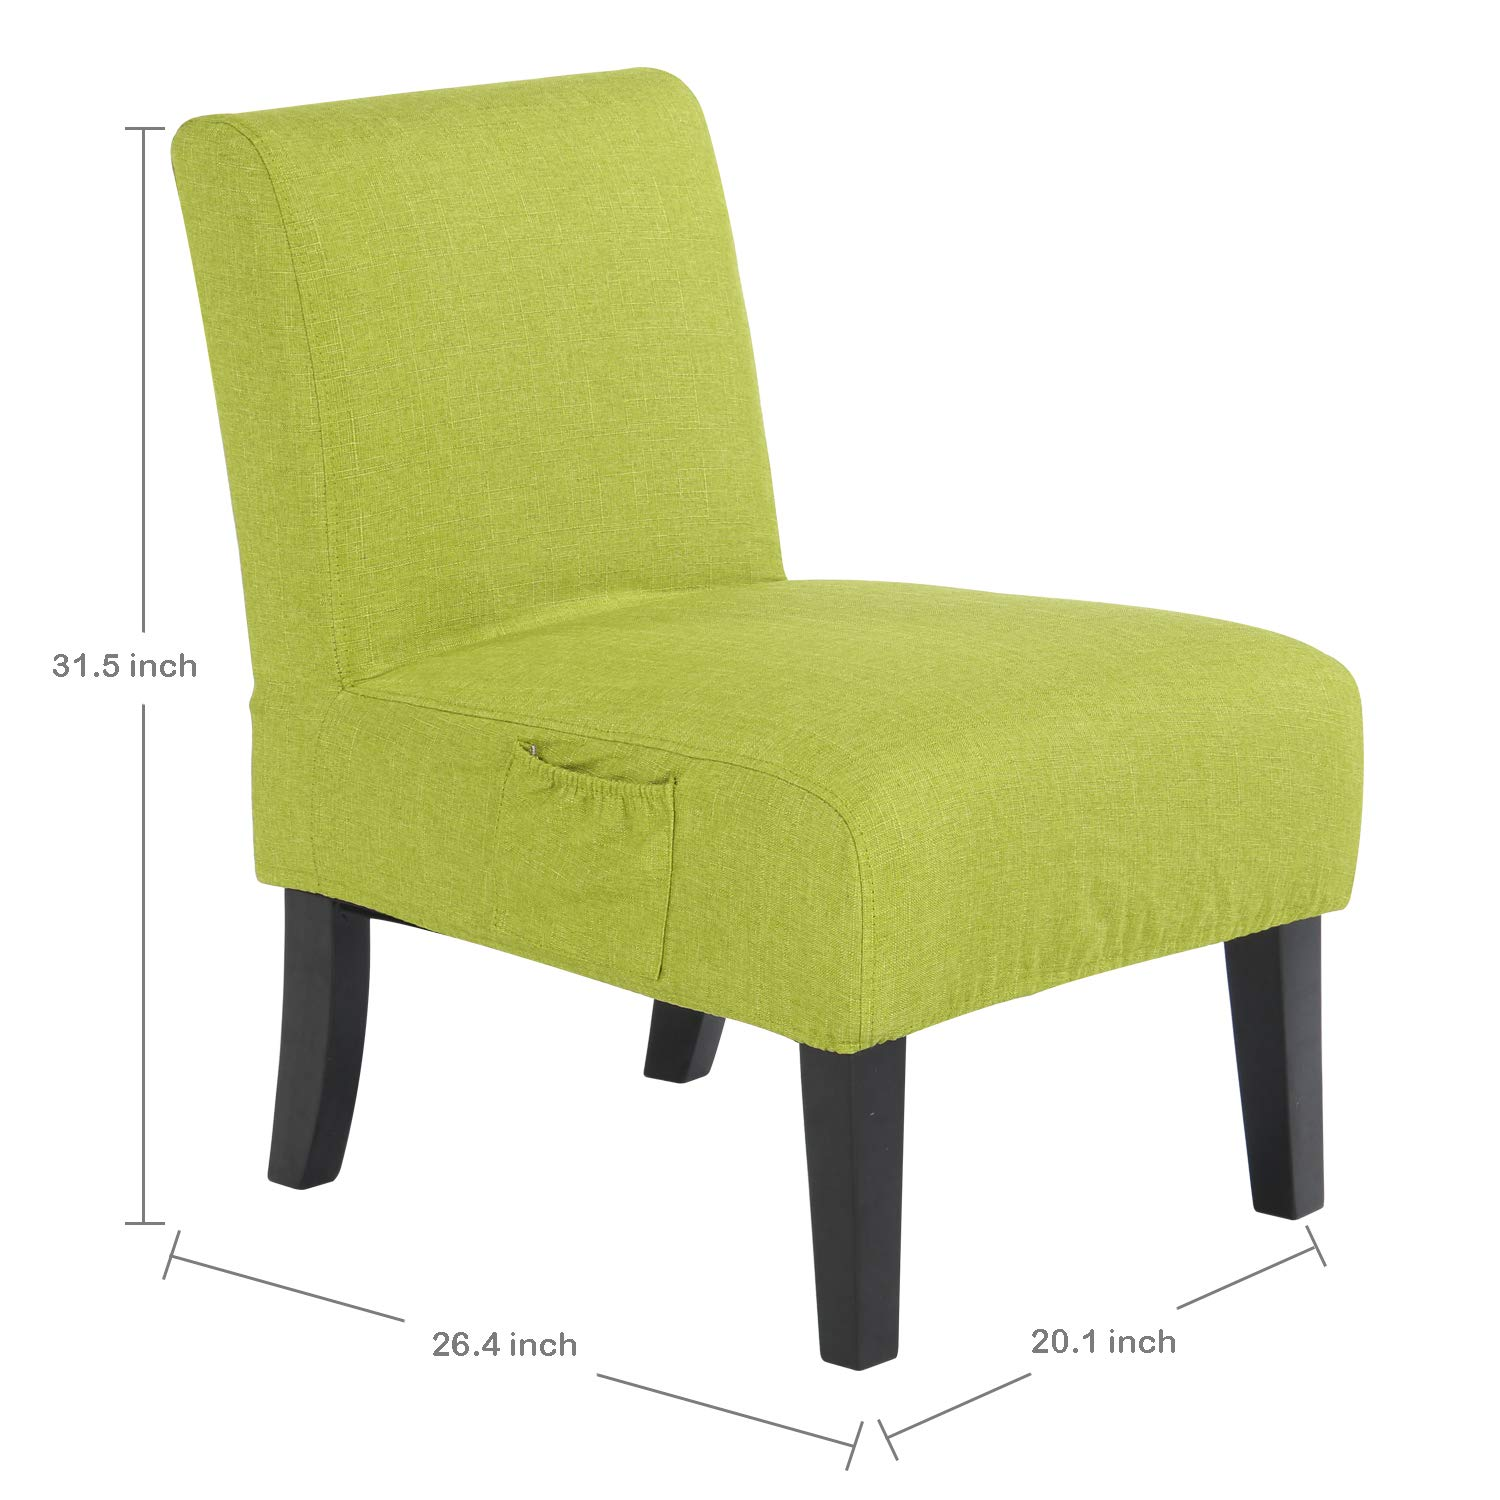 Altrobene fabric armless contemporary accent chair slipper side chair for living room bedroom with solid wood legs removable washable slipcover lime